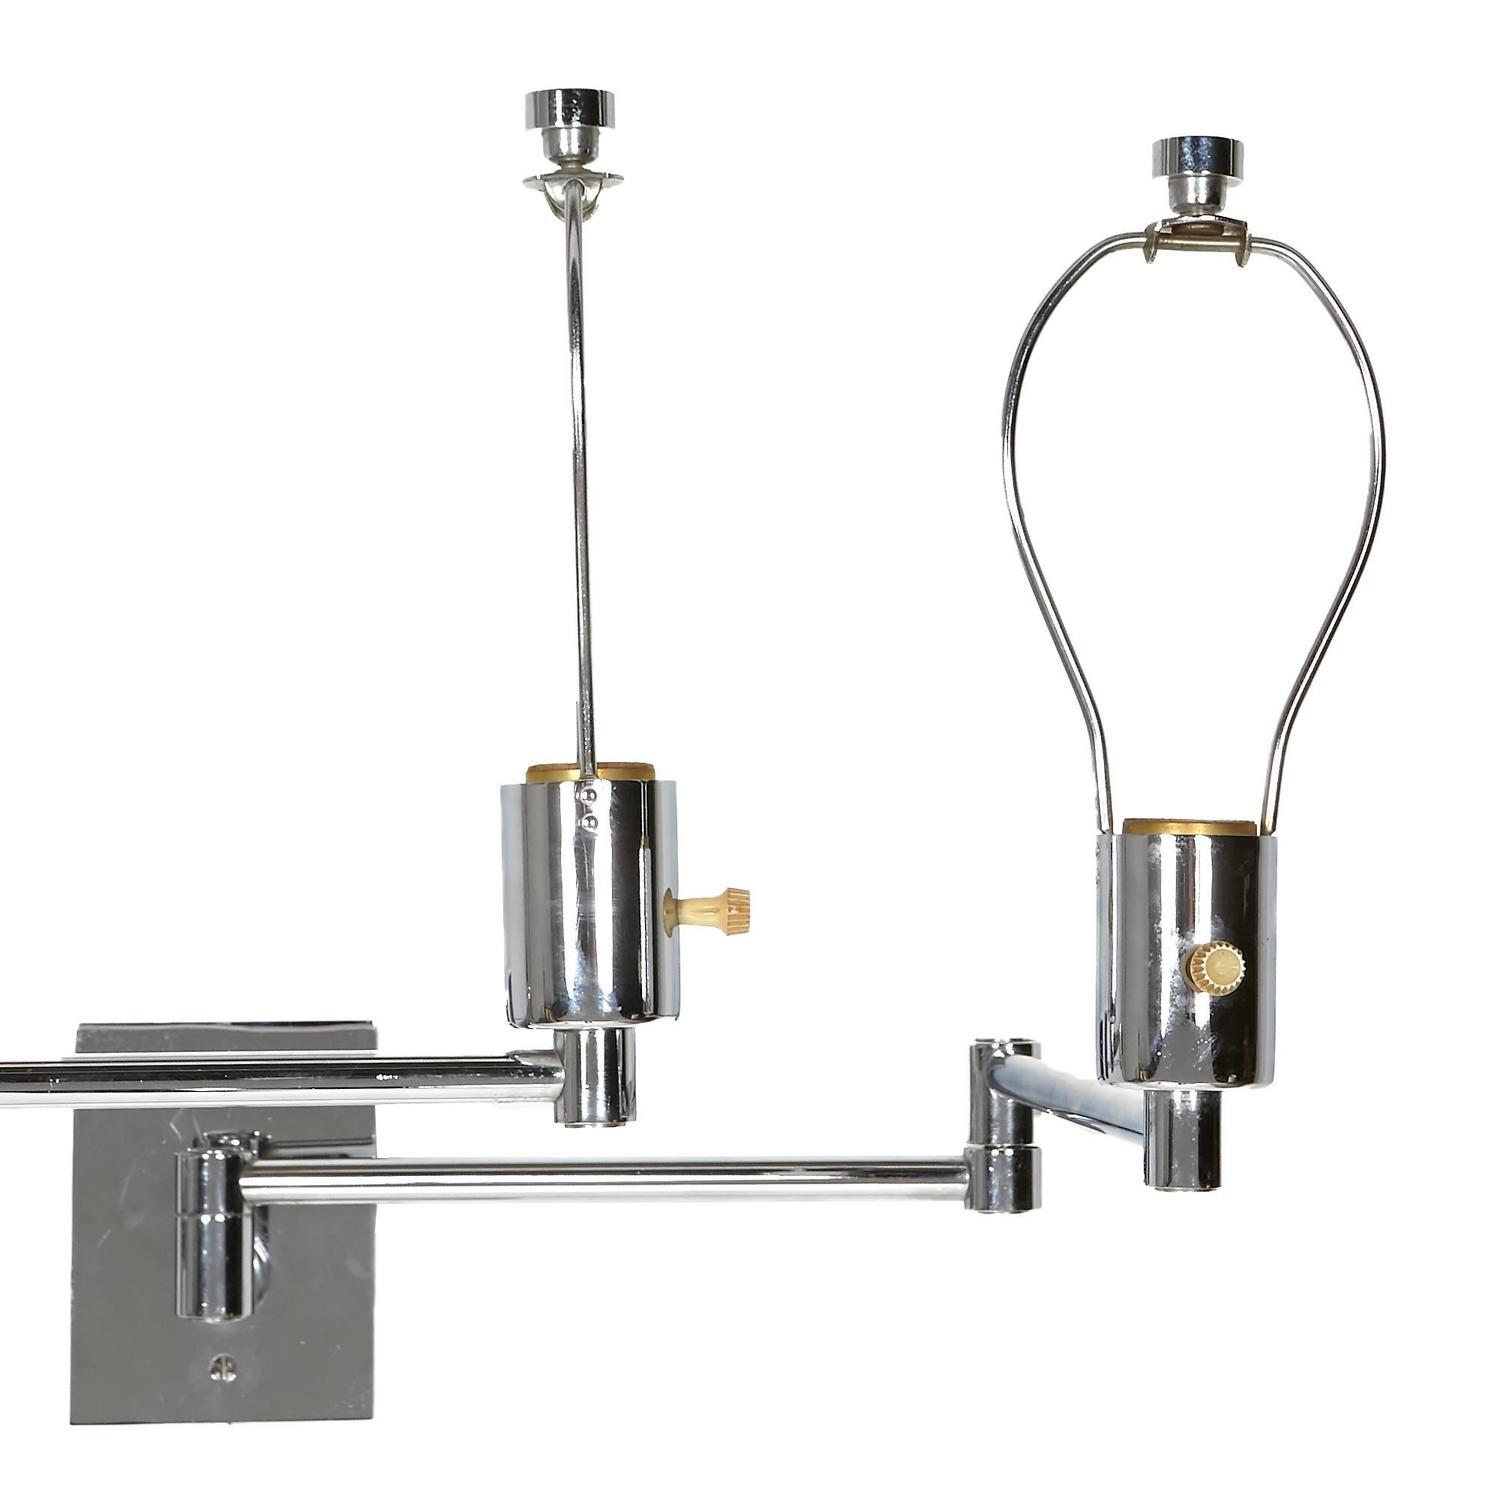 Wall Mounted Lamps With Swing Arms : Pair of Georg W. Hansen Chrome Swing Arm Wall Mounted Lamps For Sale at 1stdibs